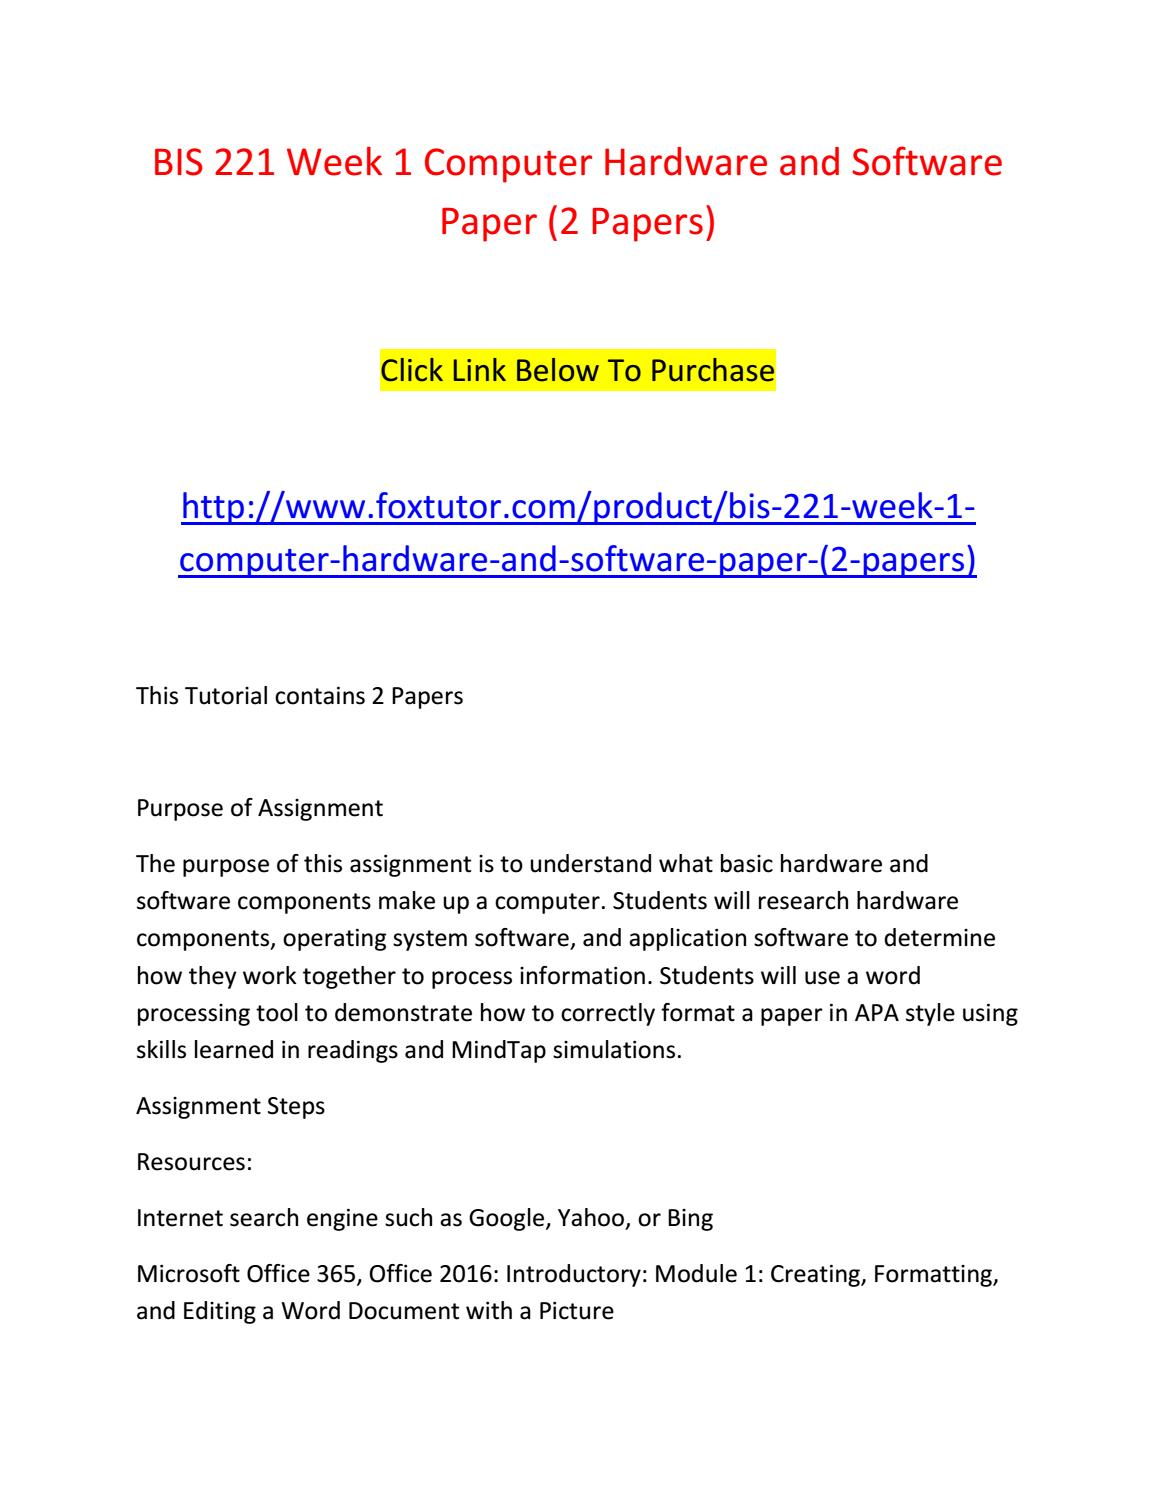 computer hardware essay If you don't know how to write a perfect essay on computer hardware yet, fell free to use an expert essay example below for guidance.